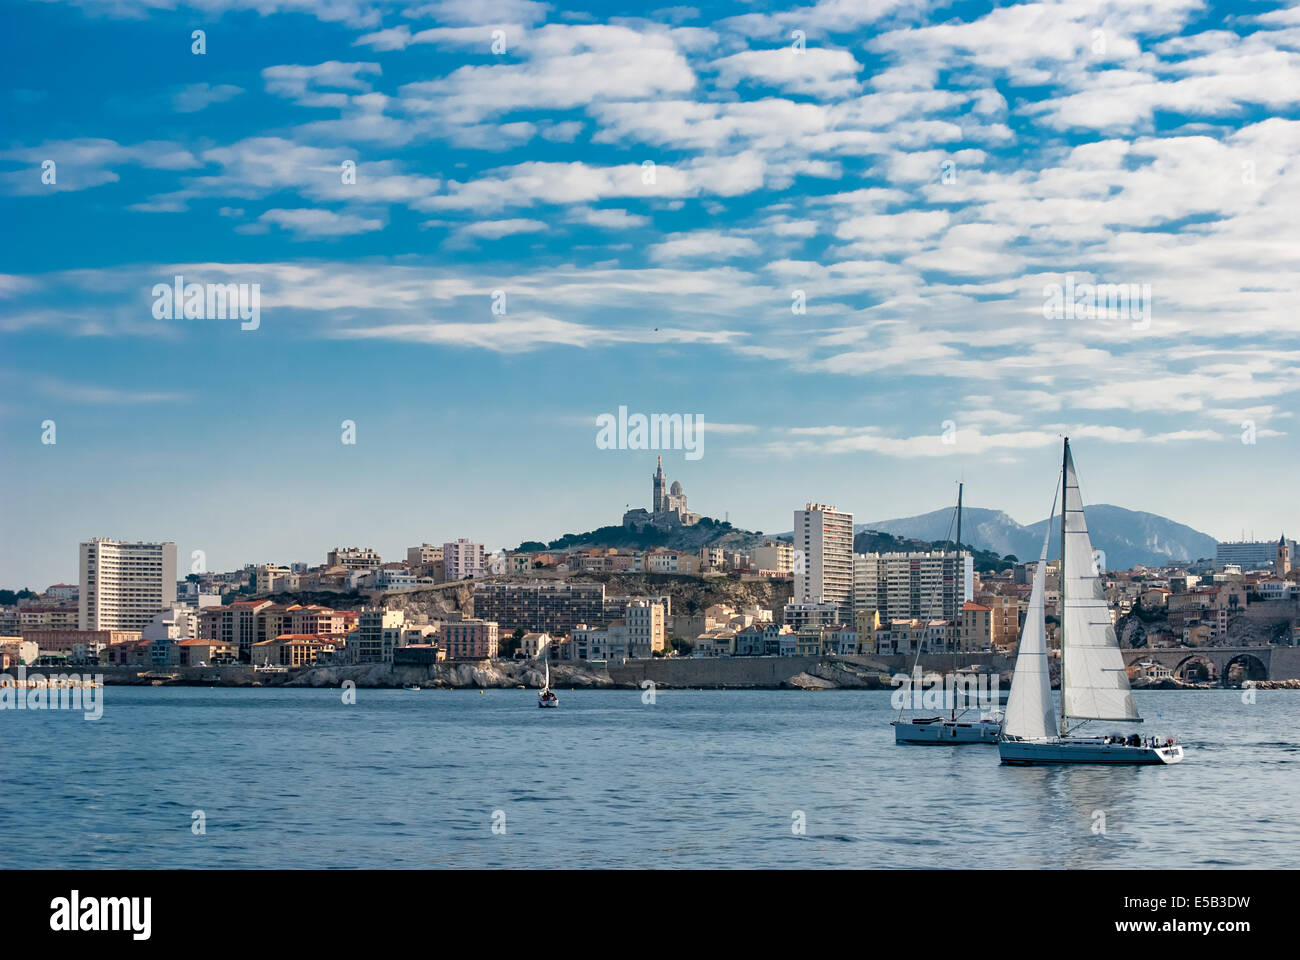 Skyline view over Marseille from The Chateau D'If on Isle D'if - Stock Image